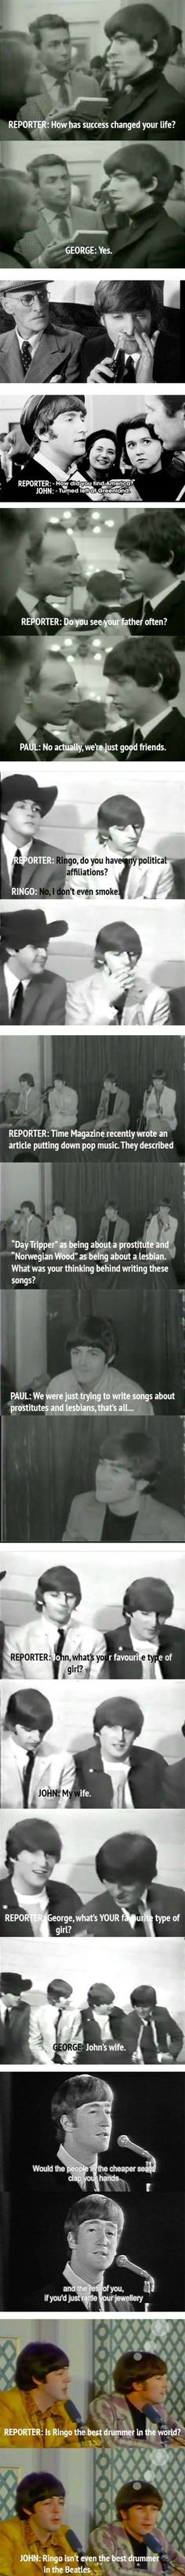 The Beatles give dumb questions the answers they deserve. Because they're The Beatles. So of course they do.